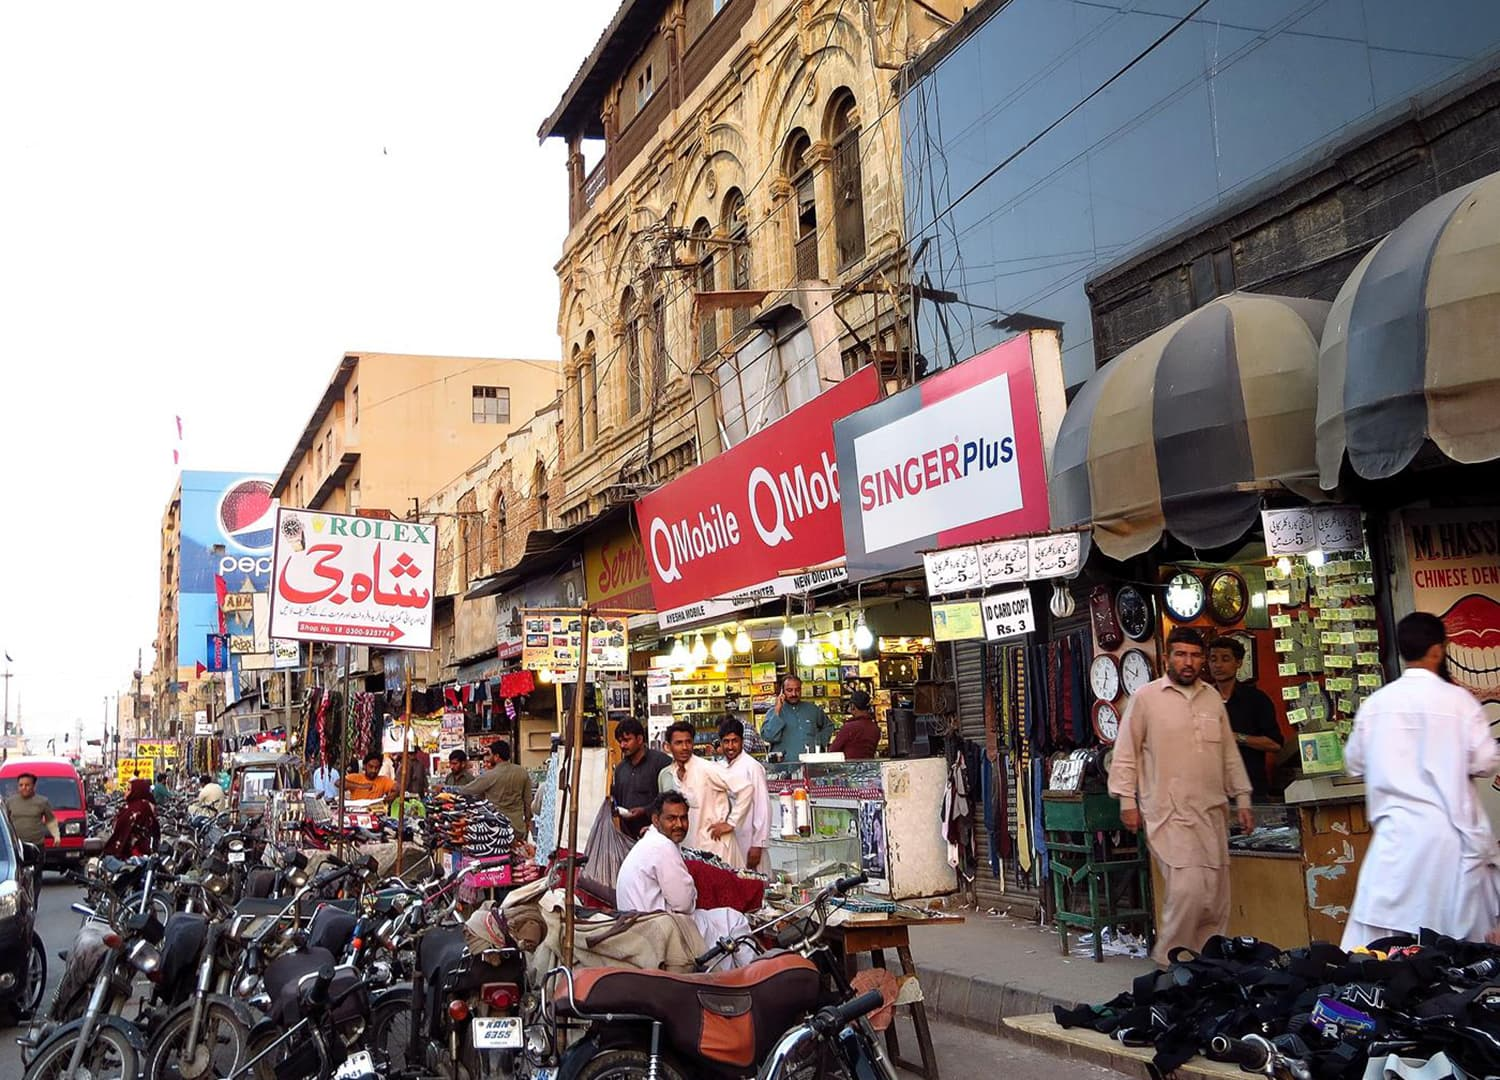 A view of the market in Saddar, Karachi.